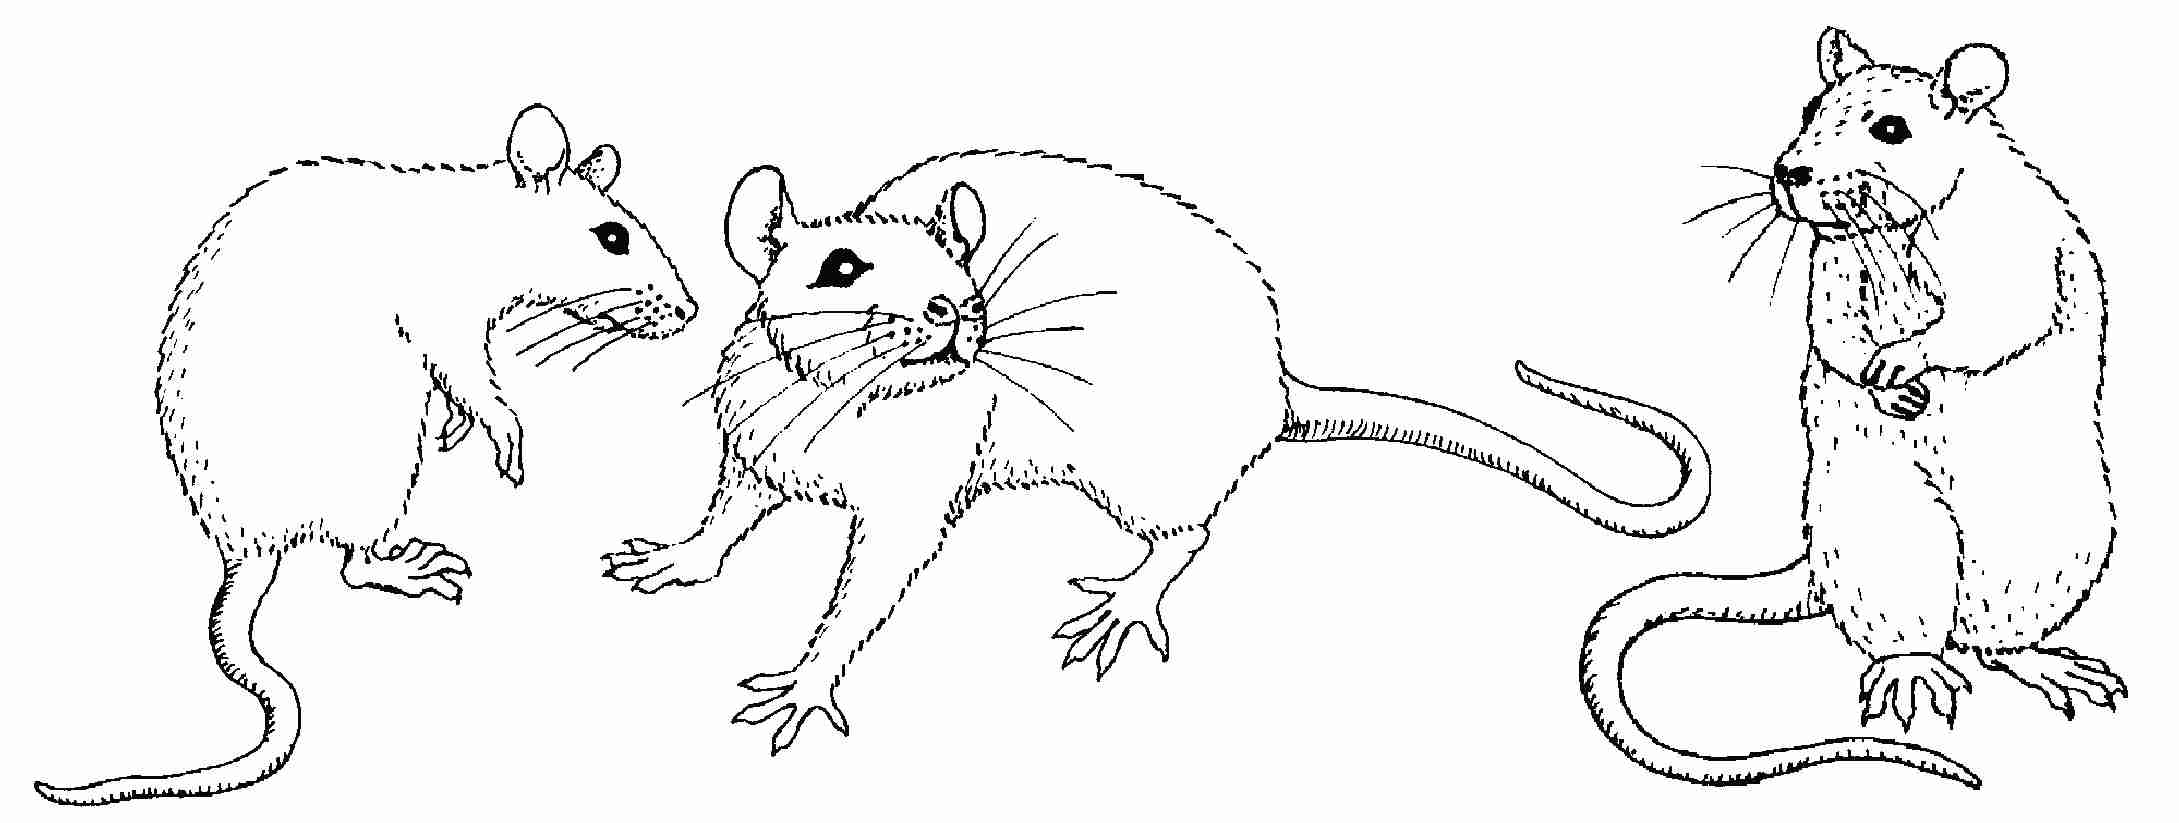 rat images for kids how to draw cartoon rat for kids beginners pencil images kids for rat